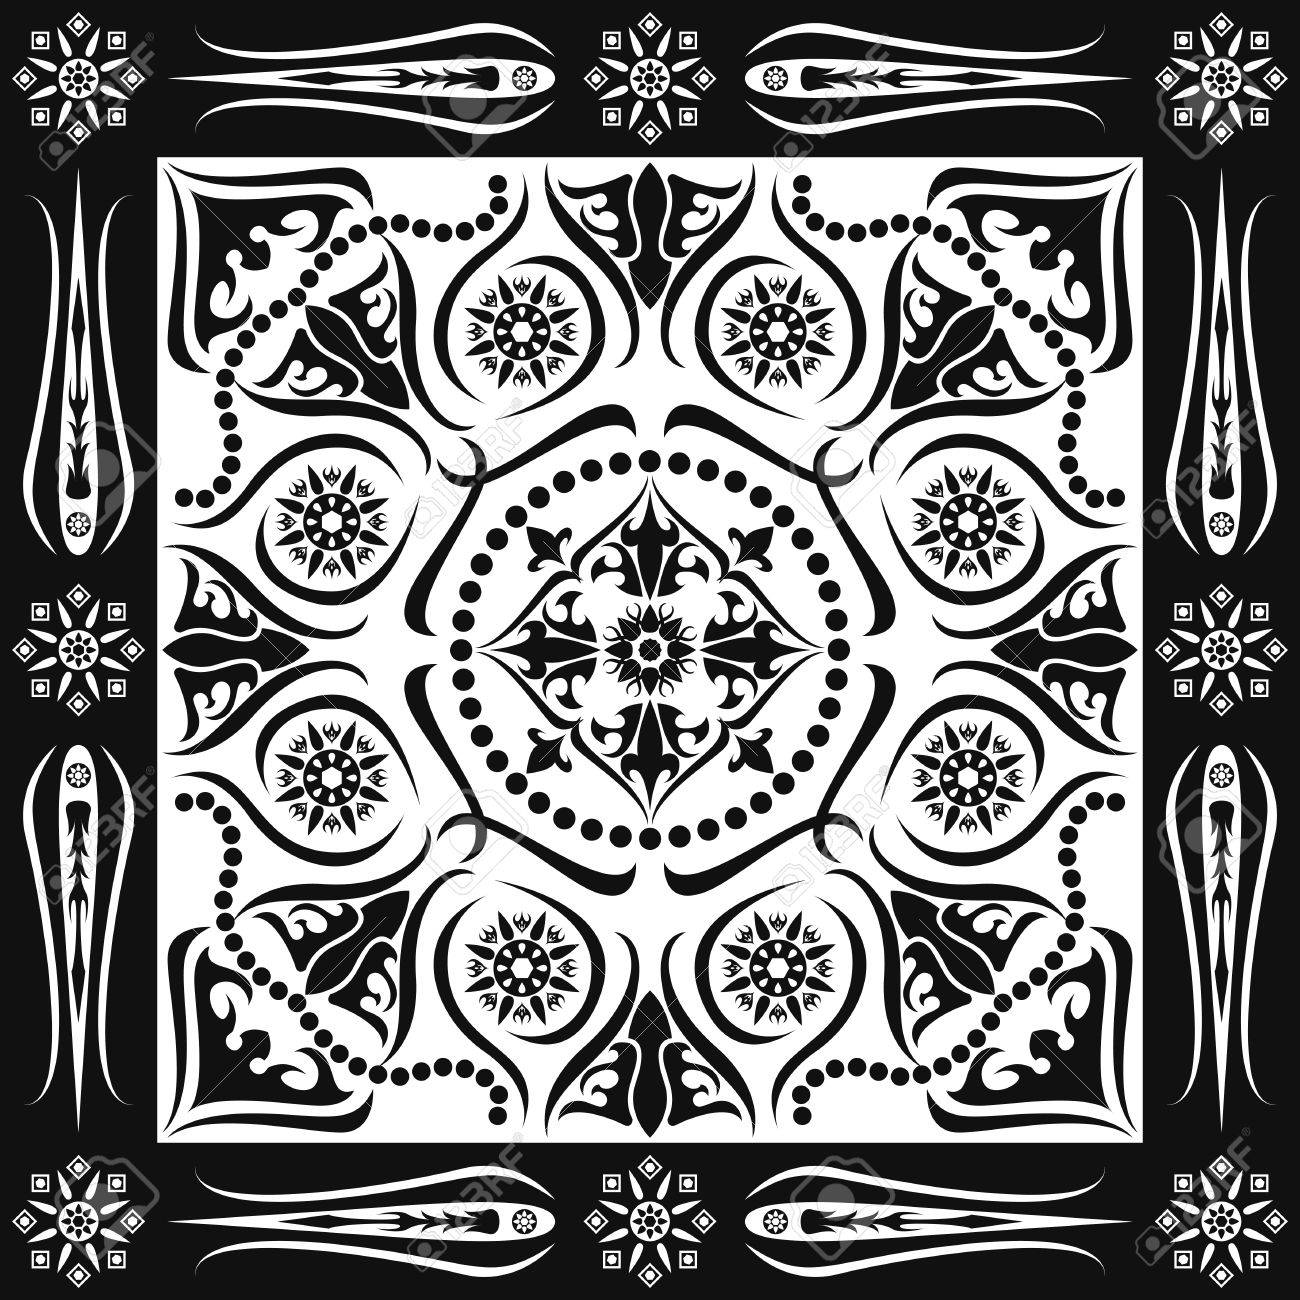 1300x1300 Square Ornamental Classic Black And White Pattern. Can Use This